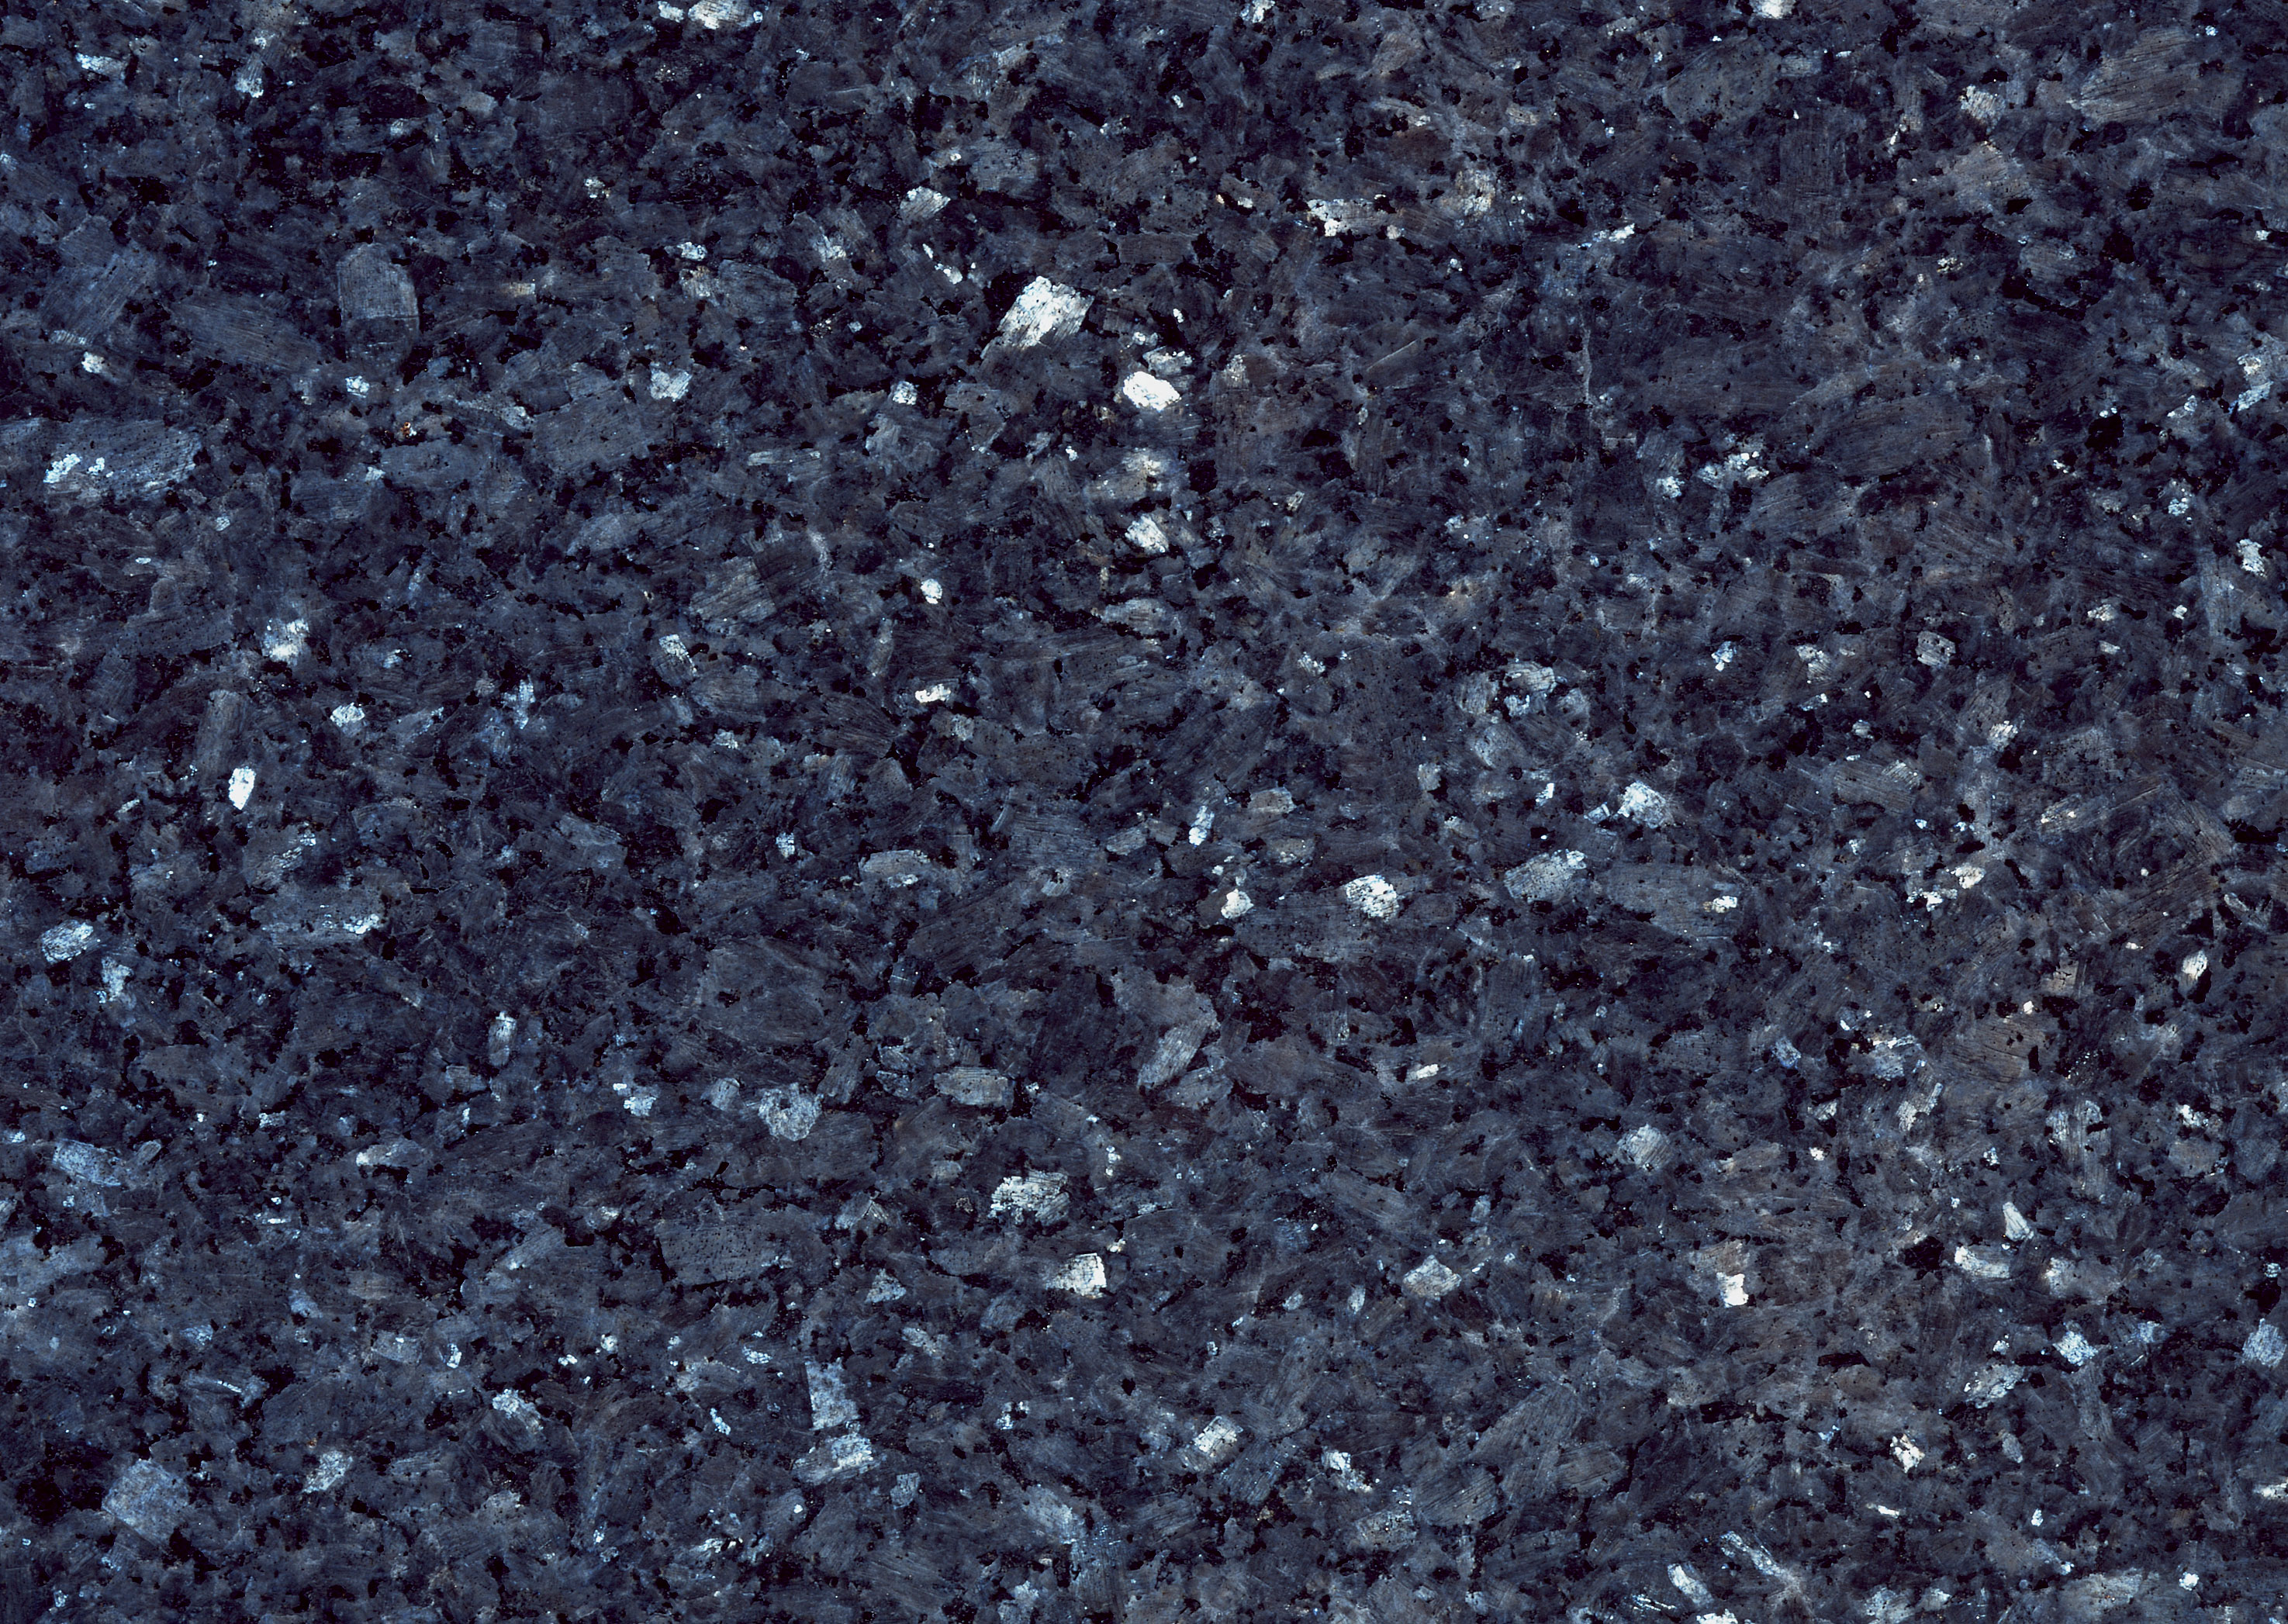 Marble Granite Rock : Granite stone texture background image